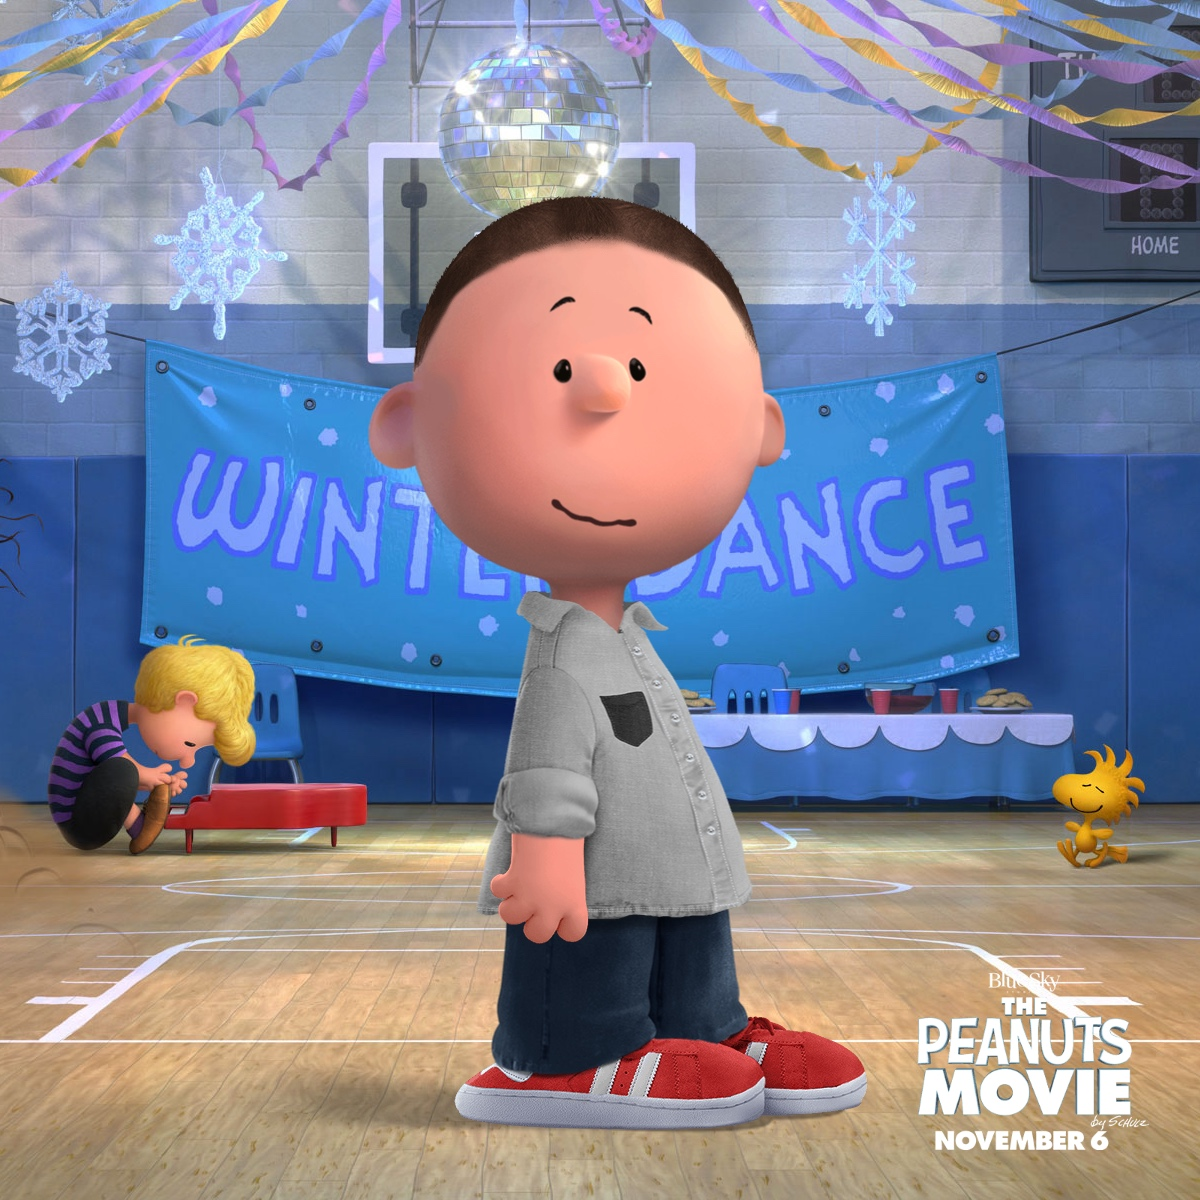 Turn your self into a Charlie Brown look-alike with the Peanutize Me app on the web.